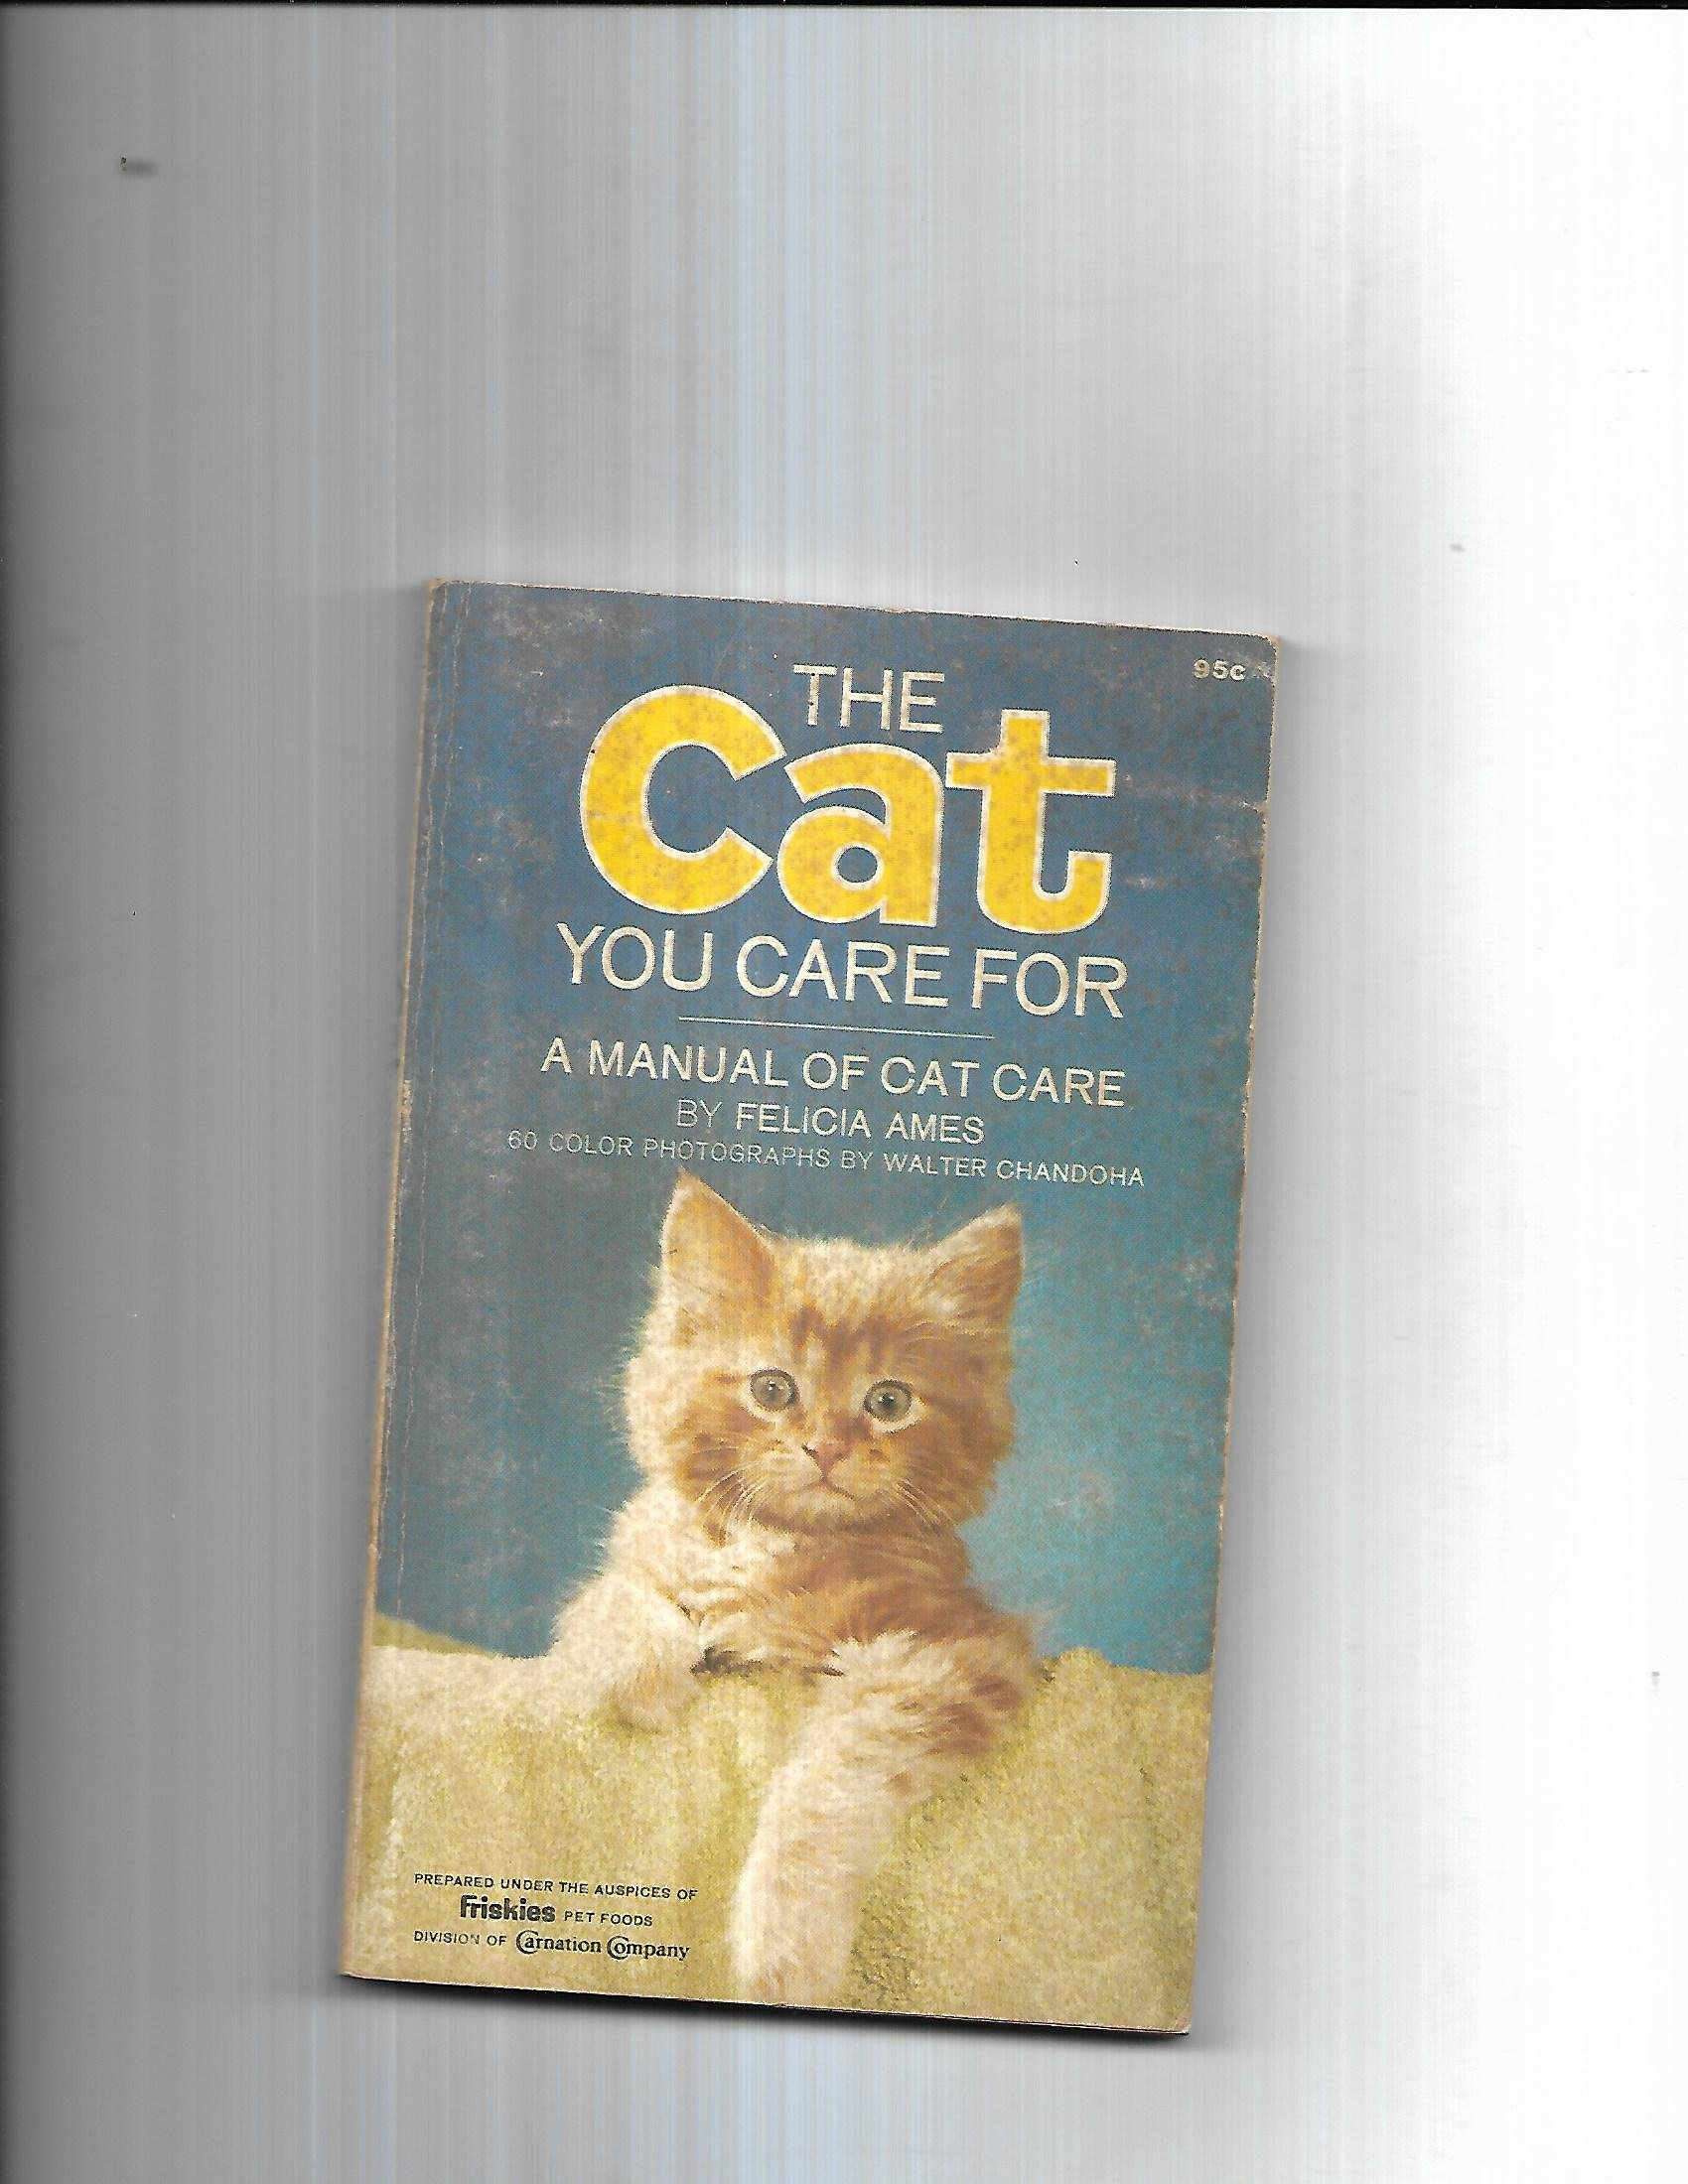 THE CAT YOU CARE FOR = A MANUAL OF CAT CARE: AMES FELICIA: Amazon.com: Books